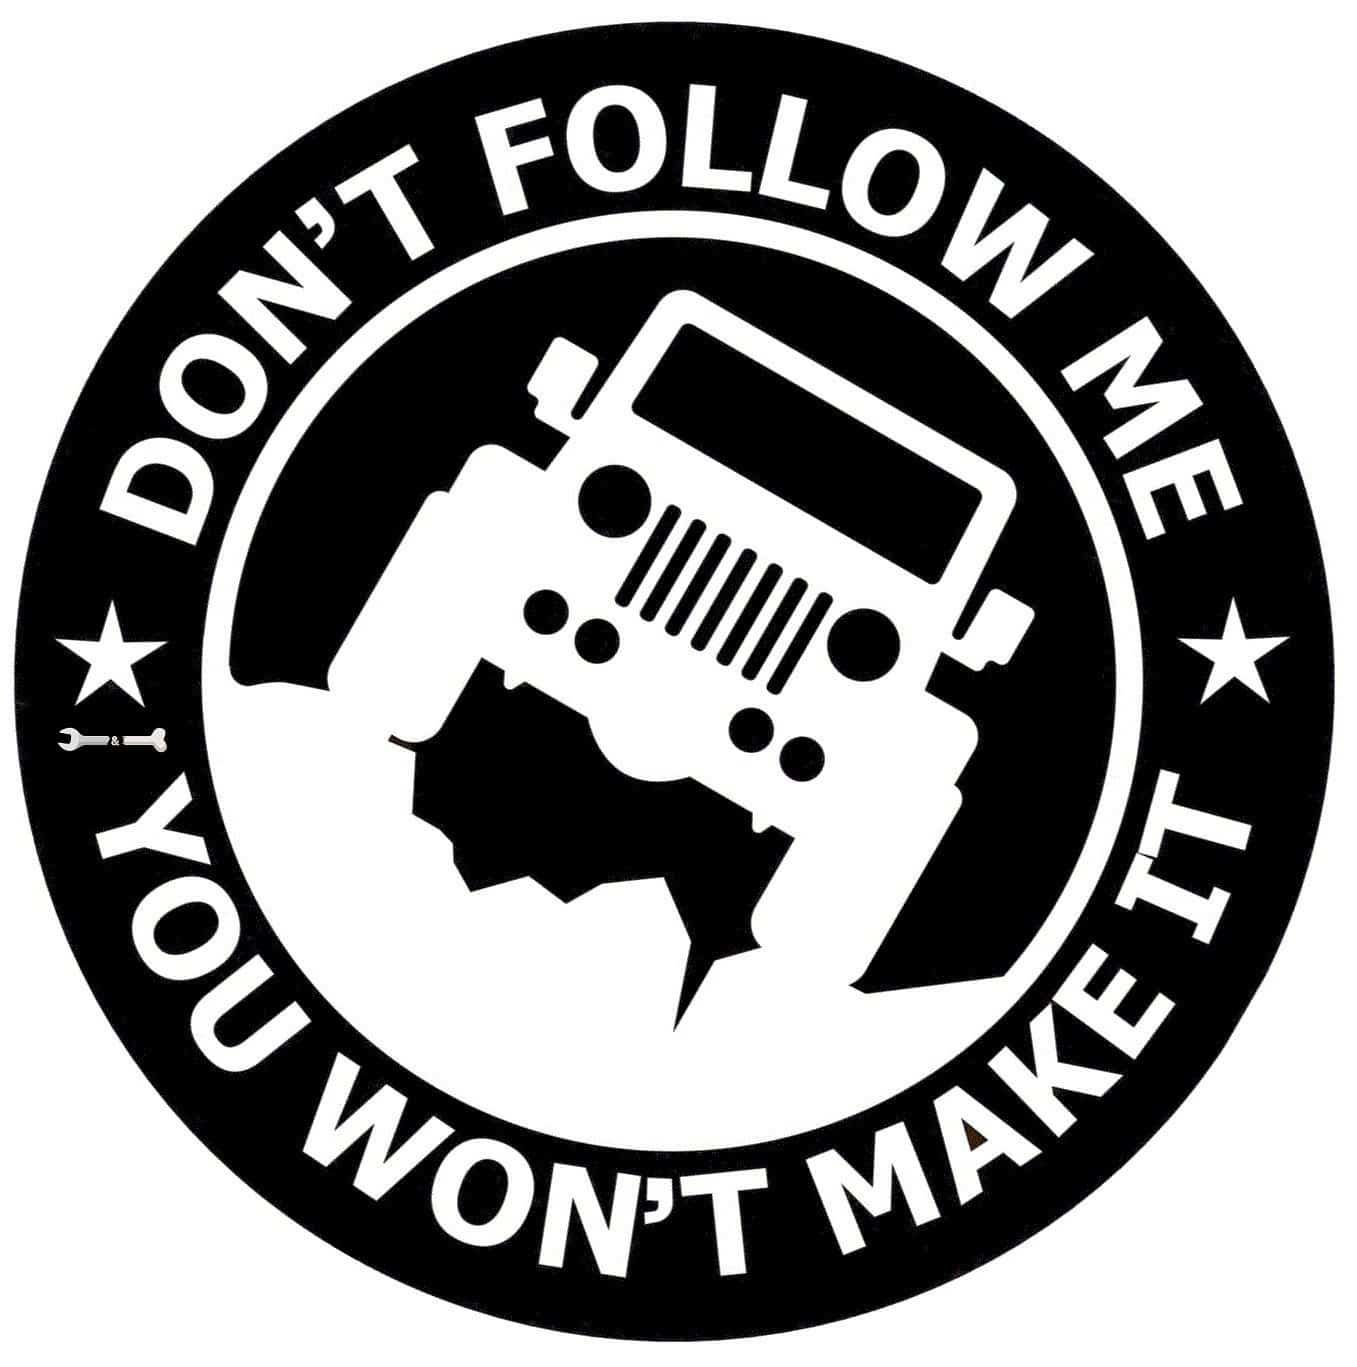 25 Unique Car Decals And Stickers For Your Ride Thingsidesire Jeep Stickers Jeep Decals Car Decals Vinyl [ 1367 x 1357 Pixel ]